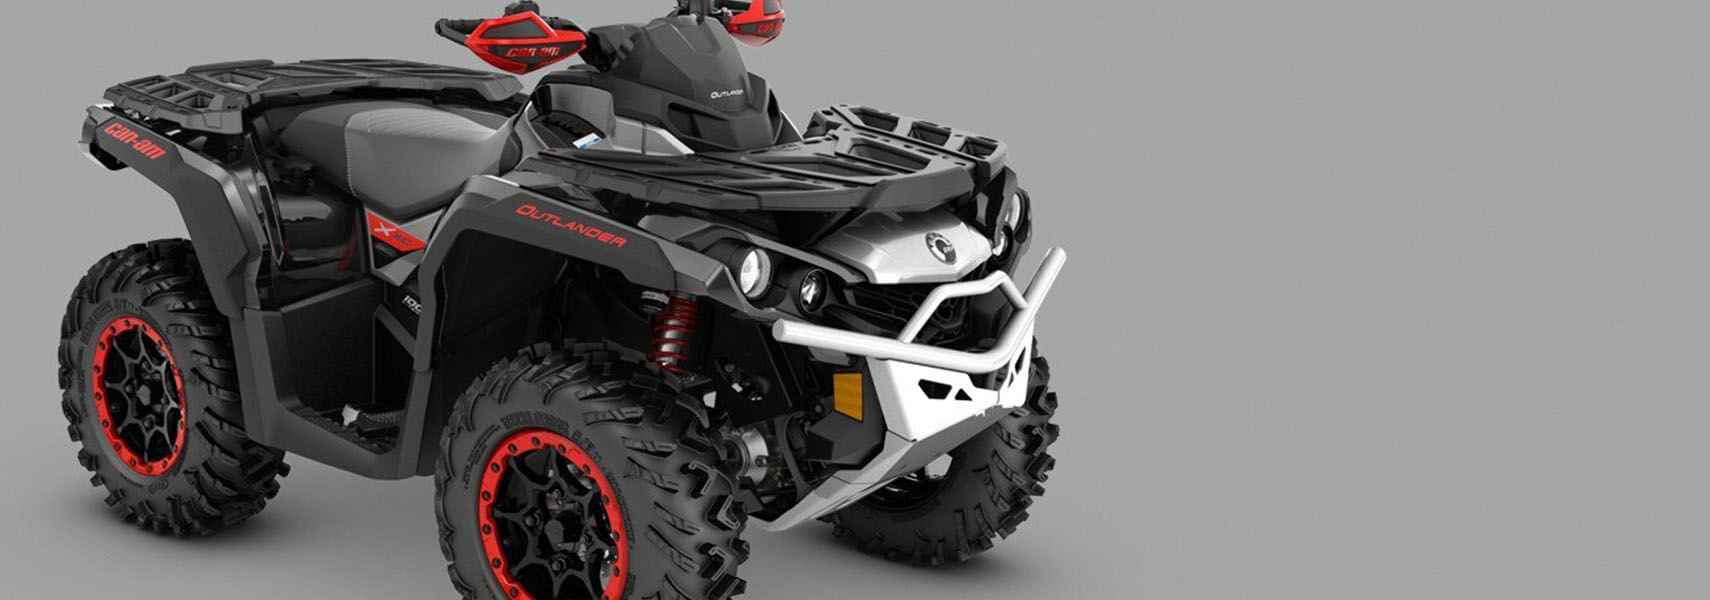 Can-am ATV - 2020 OUTLANDER X XC 1000 T